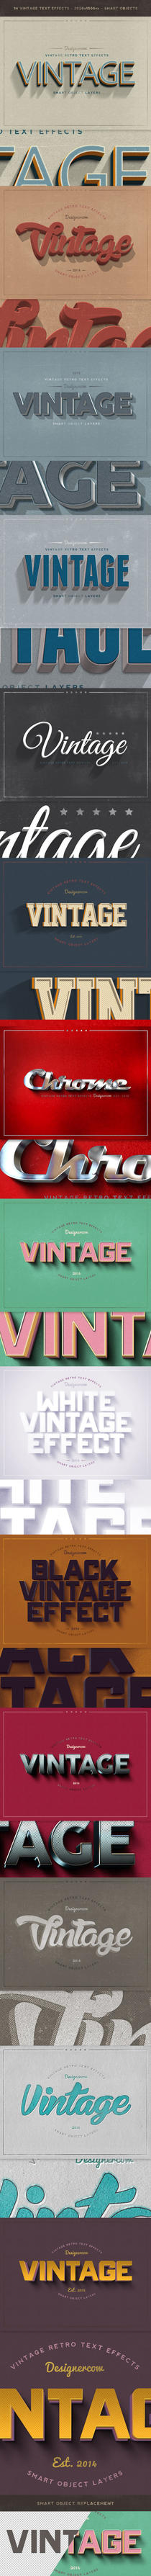 New Vintage Retro Text Styles by designercow